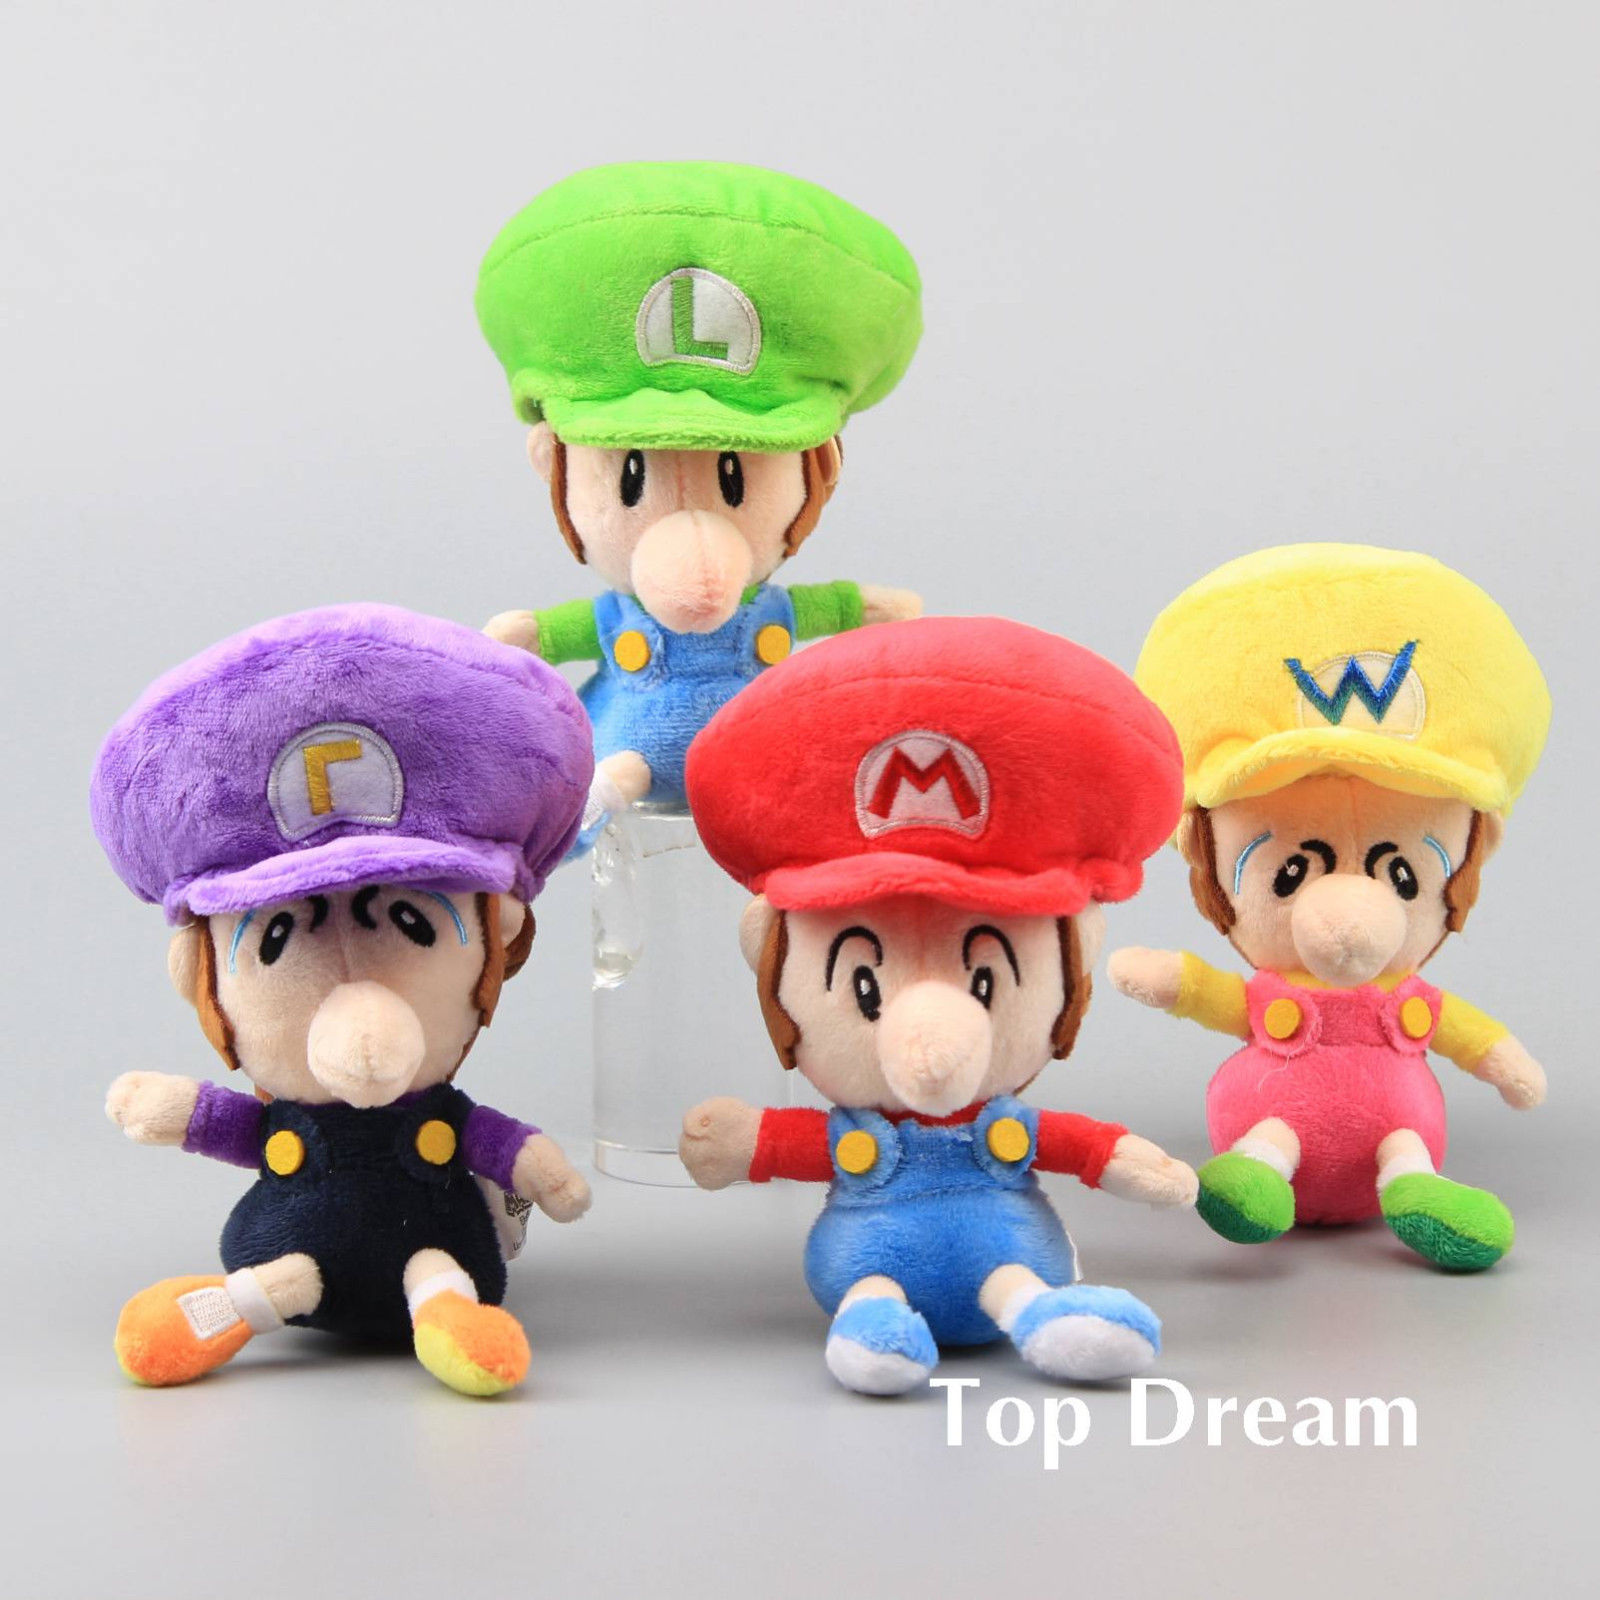 6 99 Gbp Super Mario Plush Soft Toy Doll Baby Mario Luigi